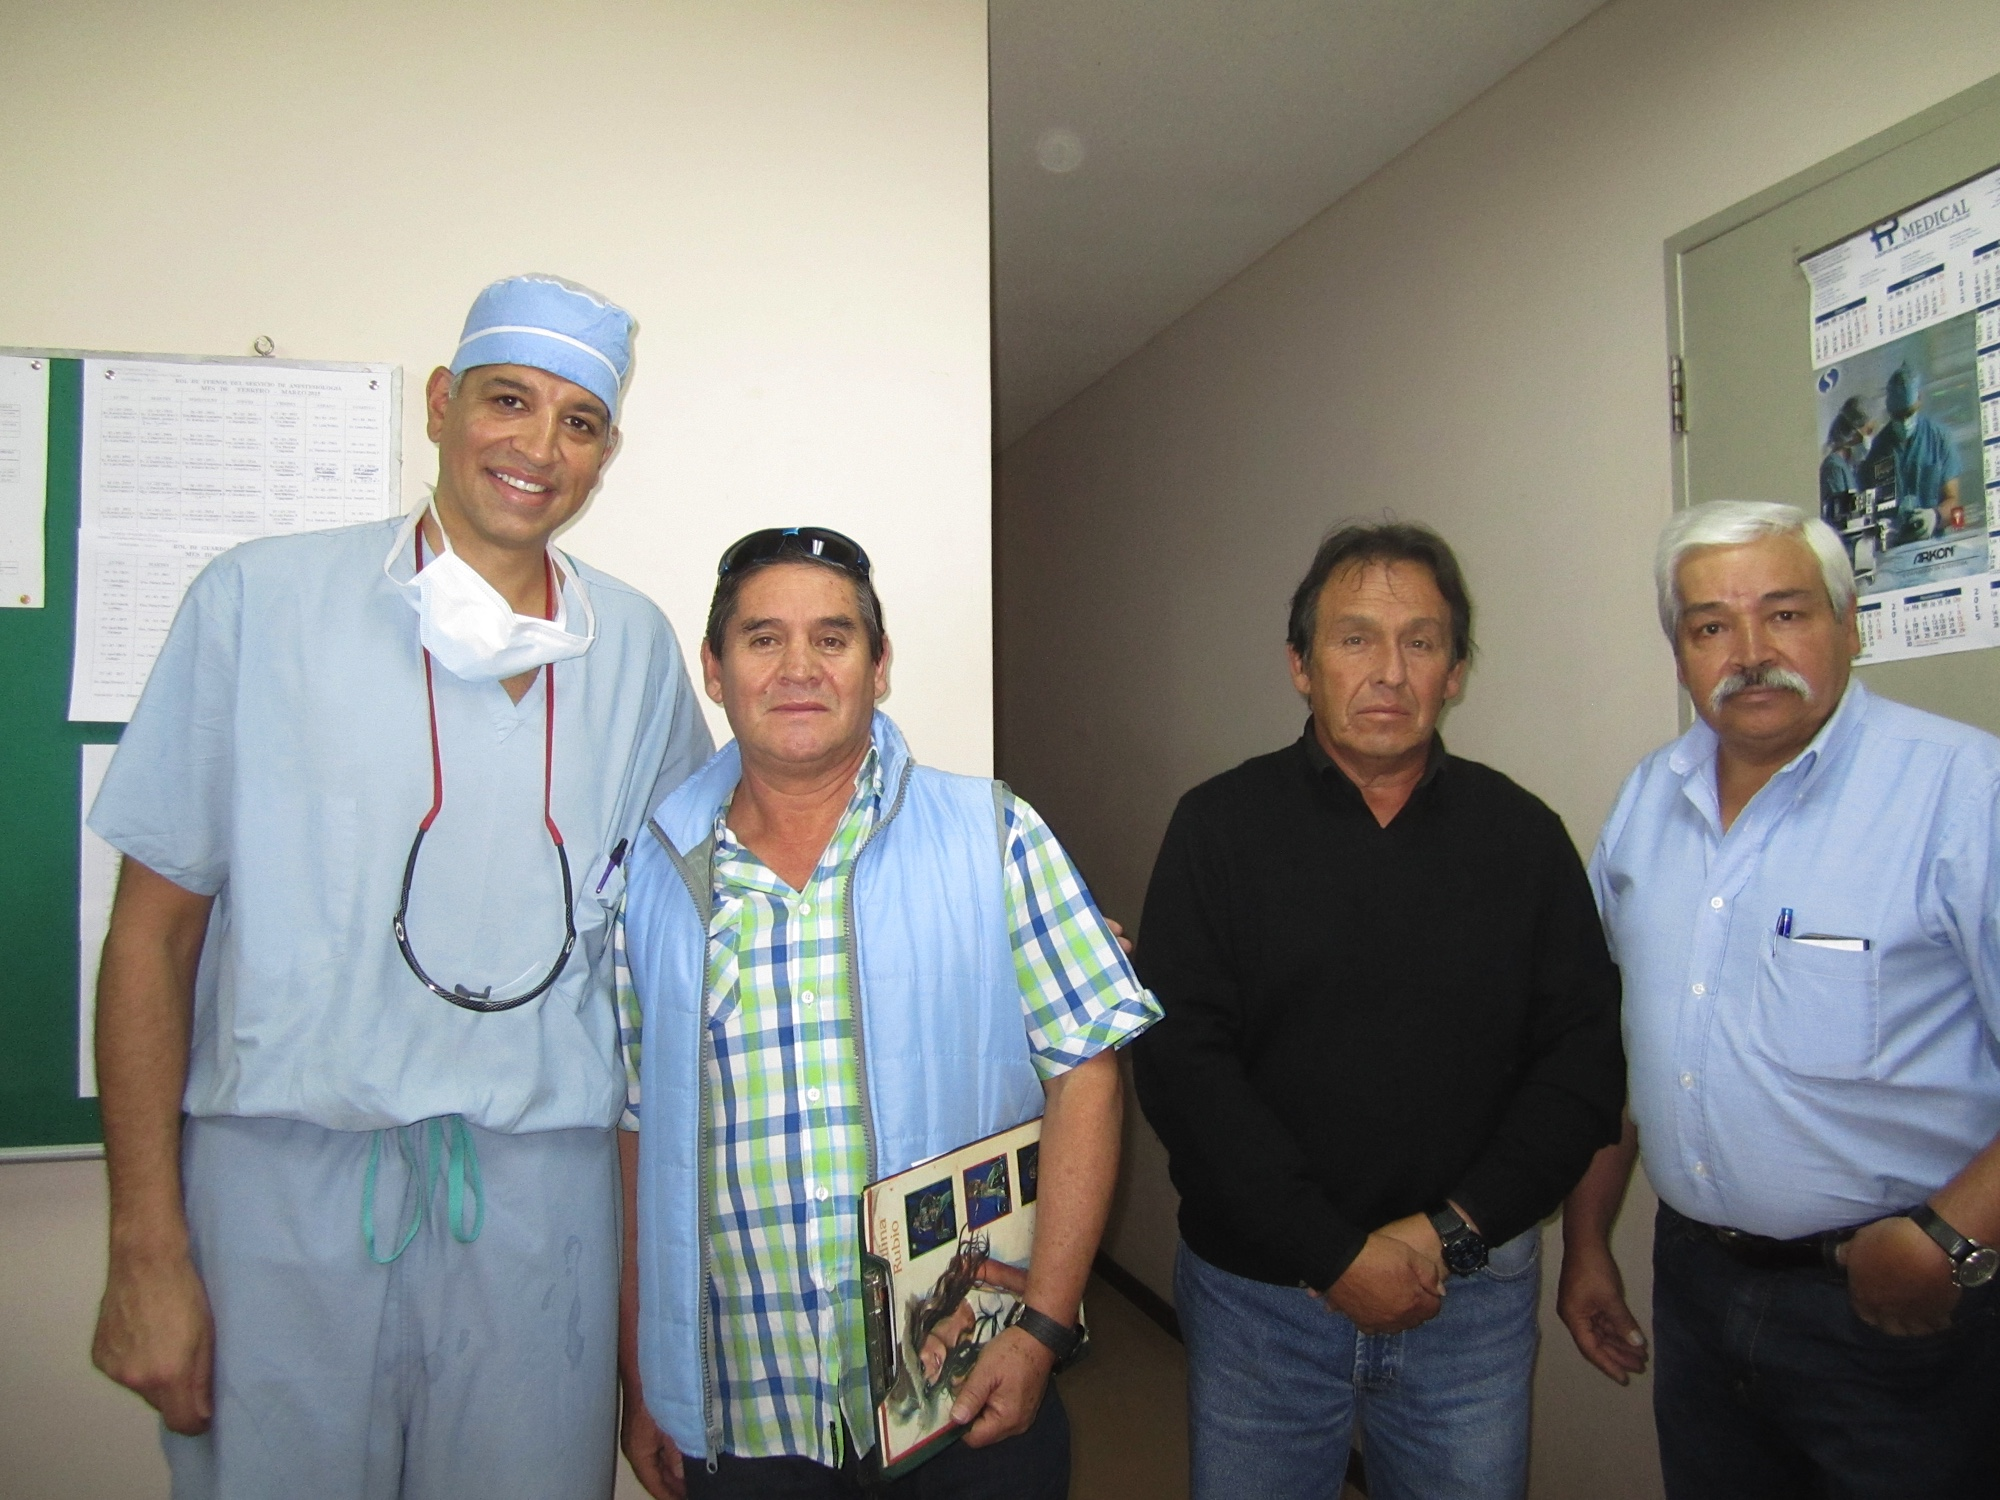 Dr. Bilimoria and Dr. Pereyra with Jose's brother after his surgery.